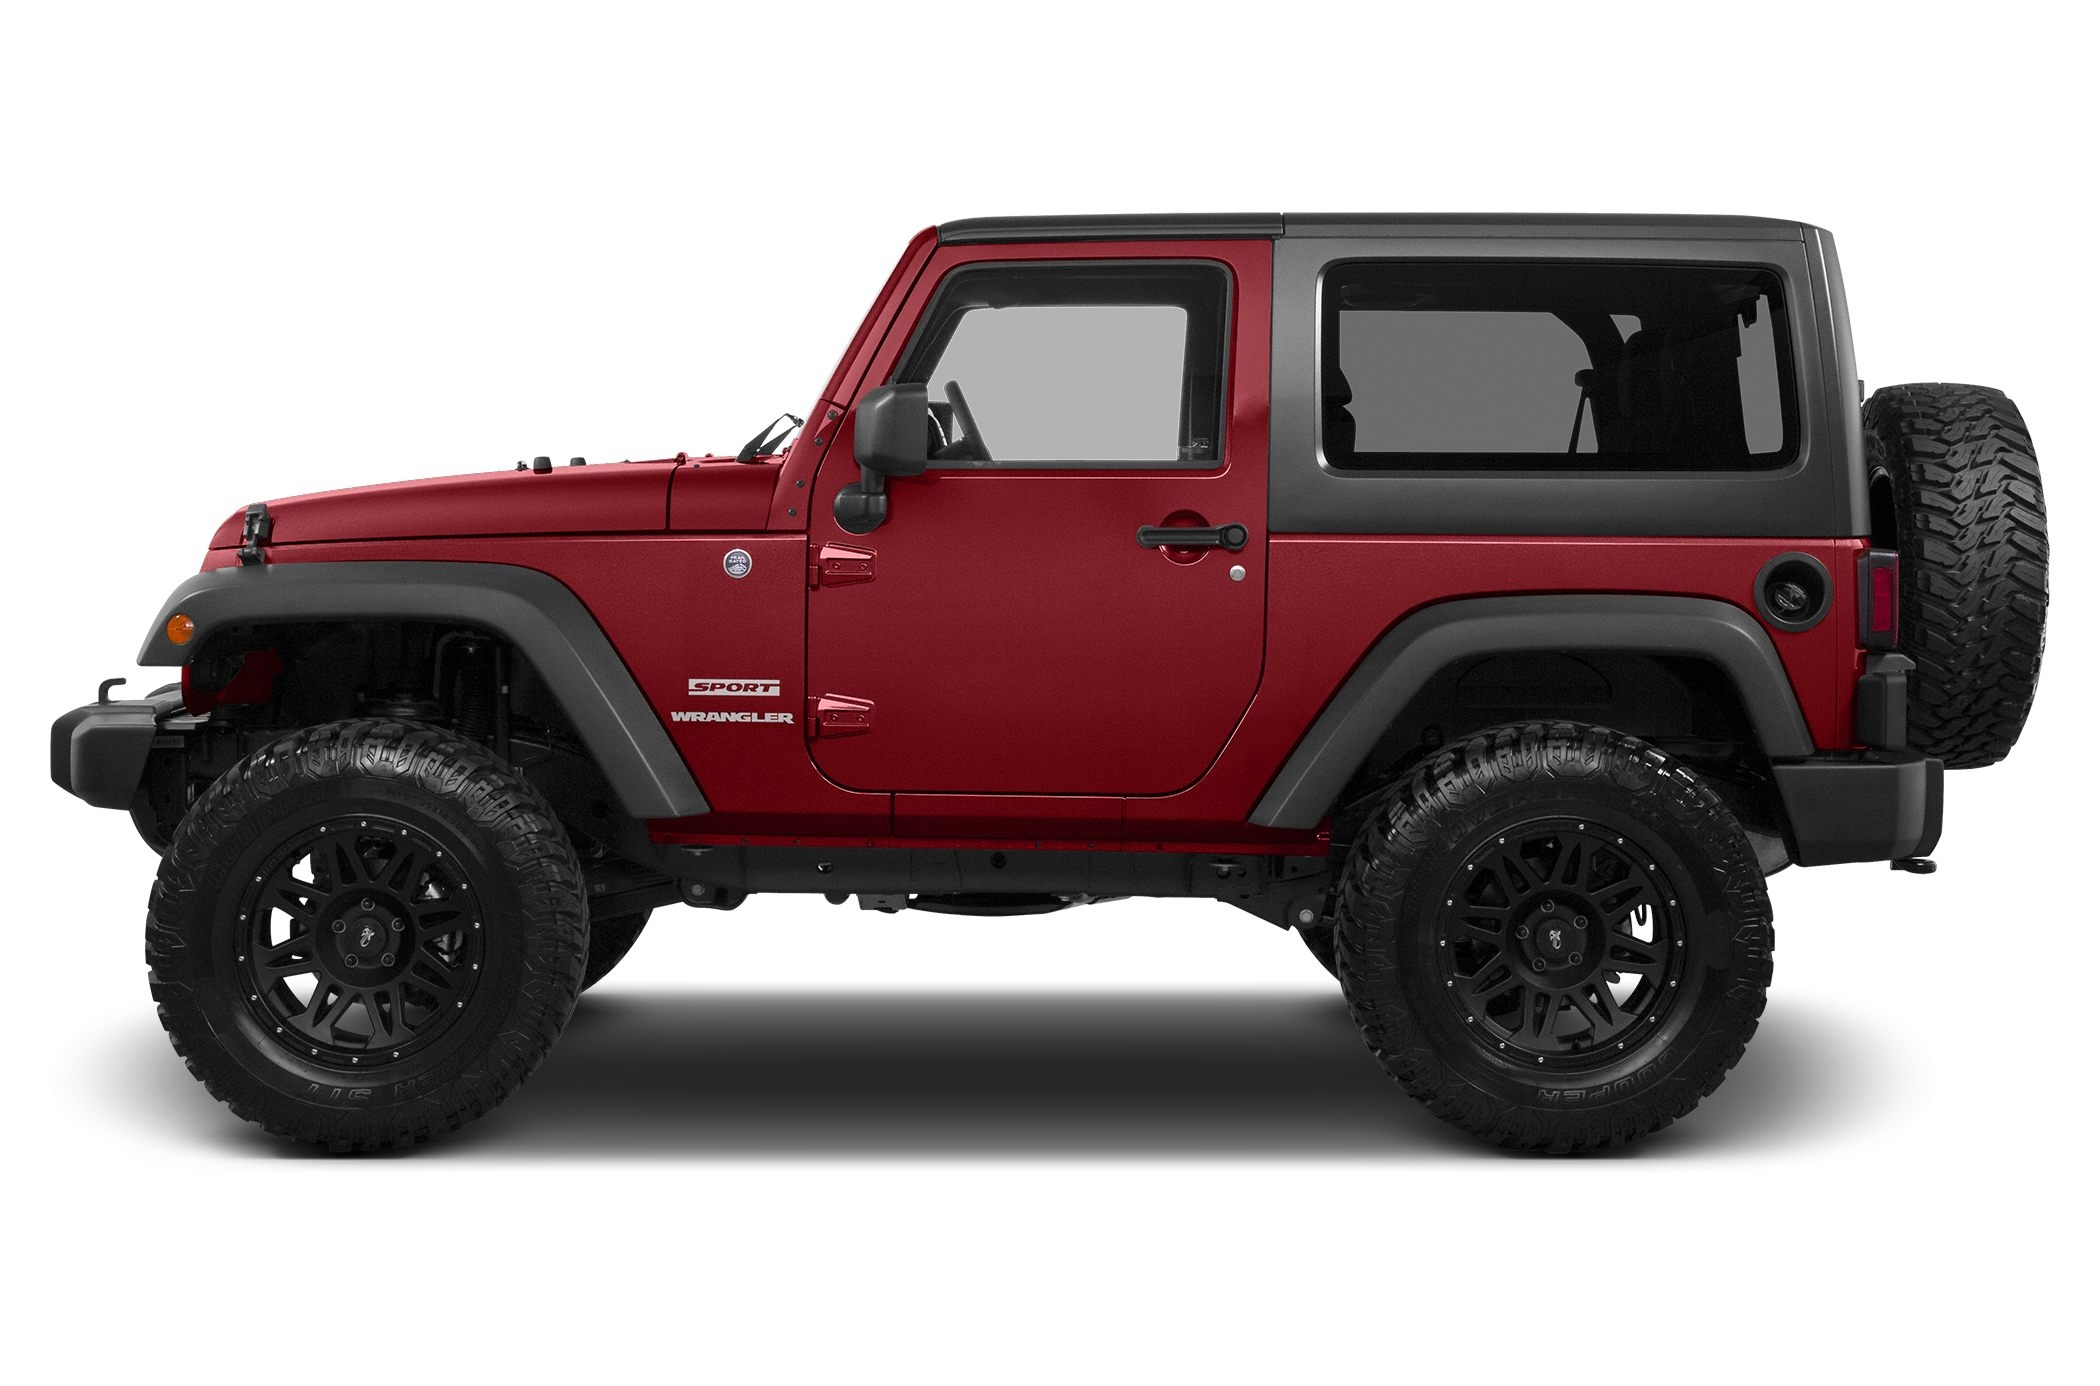 2014 jeep wrangler unlimited price cars and accessories trends jeep wrangler invoice price 2014